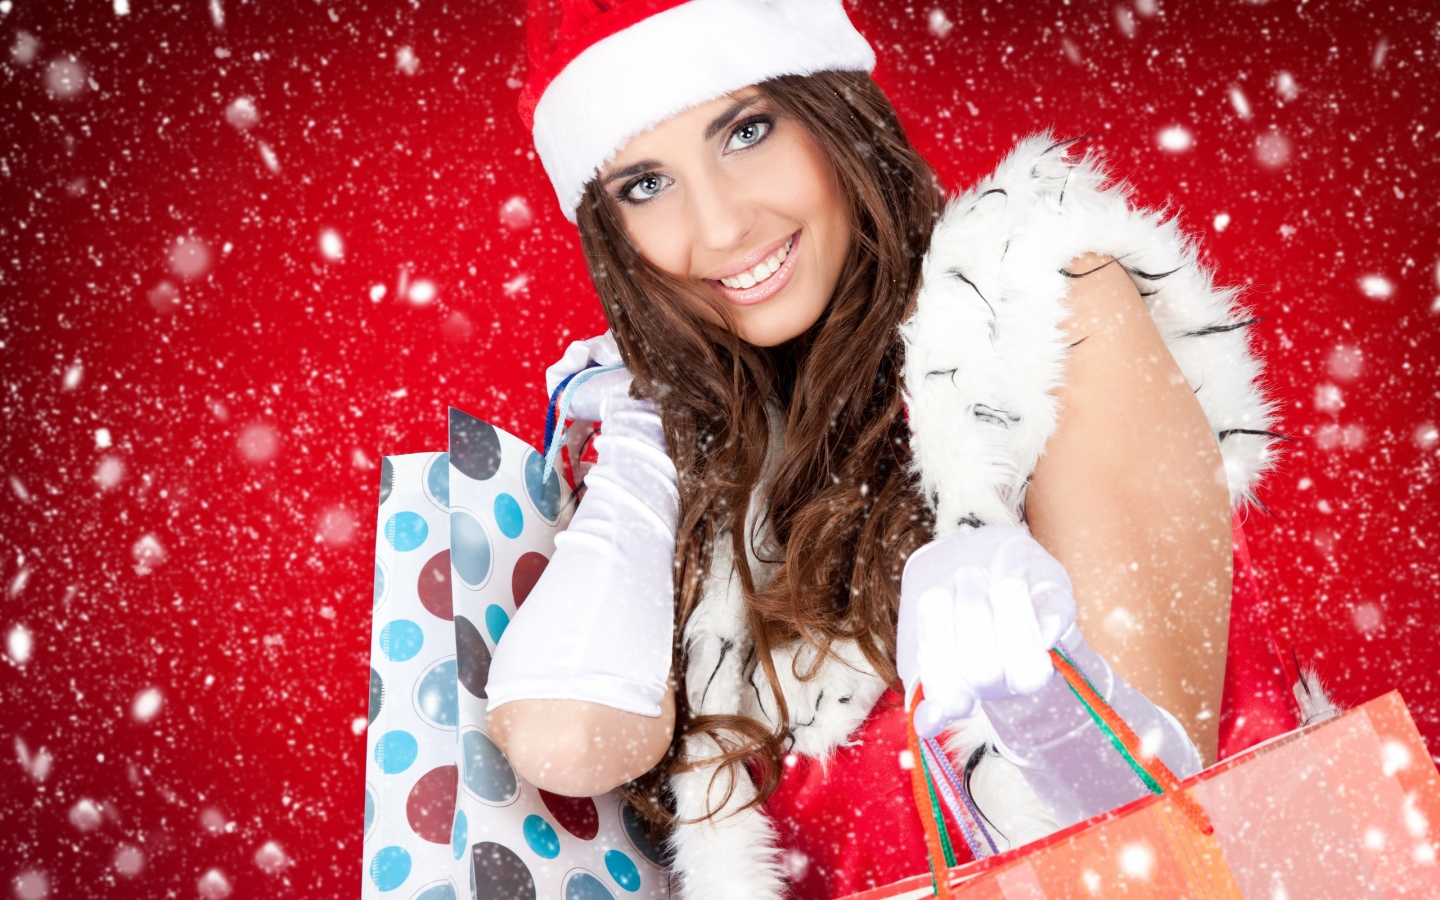 Christmas Beautiful Girl for 1440 x 900 widescreen resolution